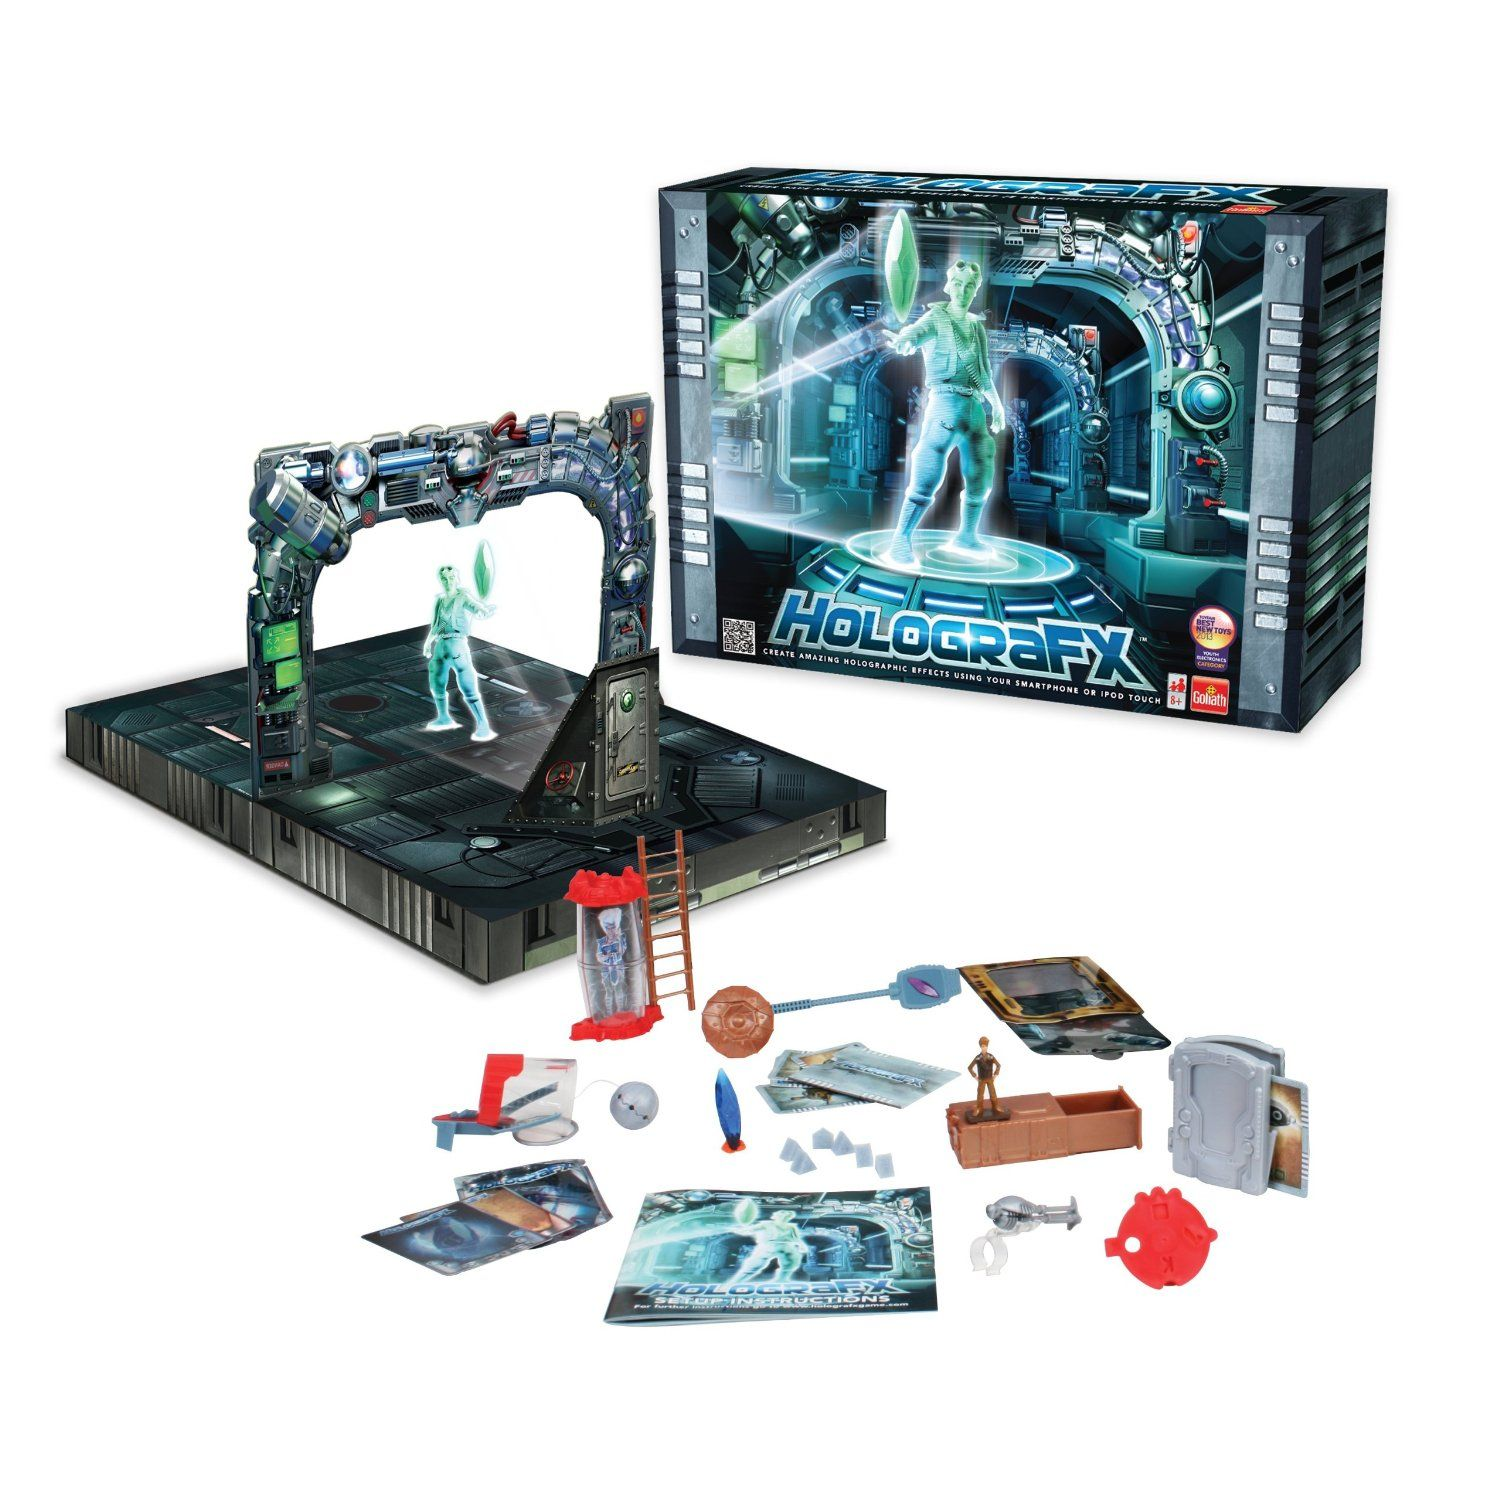 Best Christmas Gifts For 9 Year Olds: Best Toys For 9 Year Old Boys